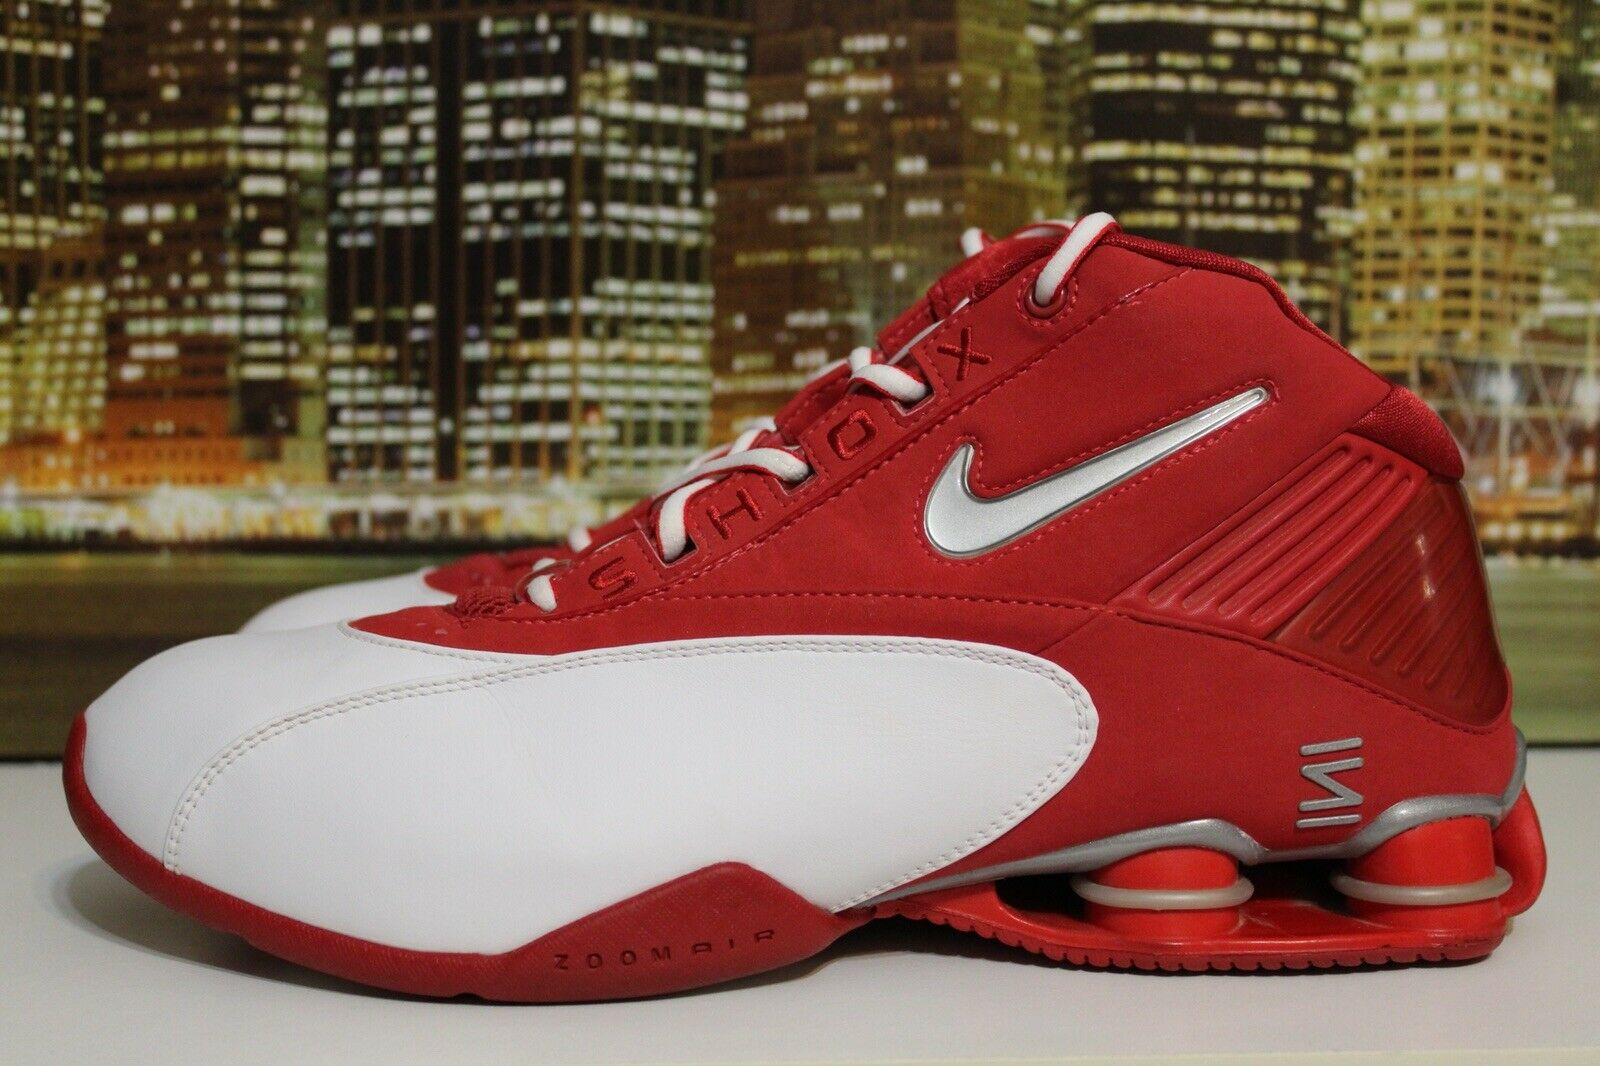 Nike Shox Status Tb 2003 Varsity Red White Silver Basketball Sneakers Size 11